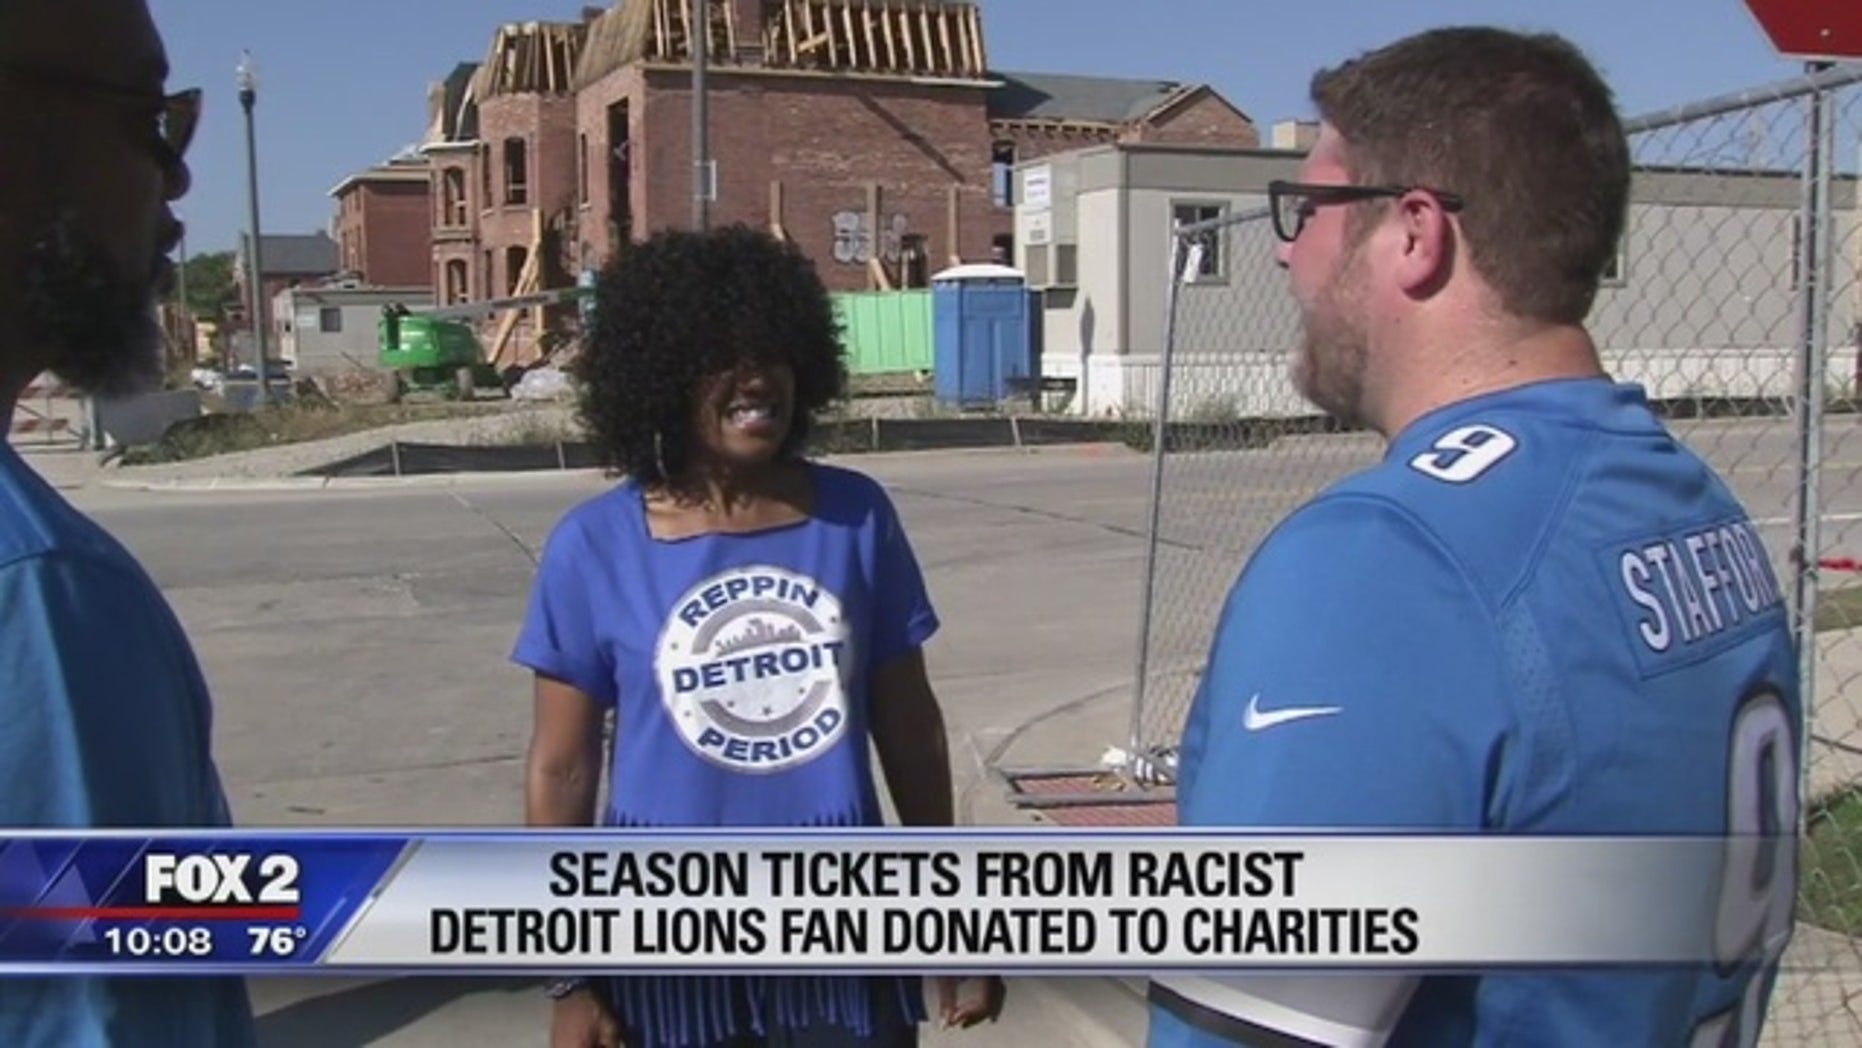 Lions fan and season ticketholder Stacey Graham (center) was happy to find out the Detroit Lions season tickets of a businessman who shamed her with a racial slur online would be given to charity.